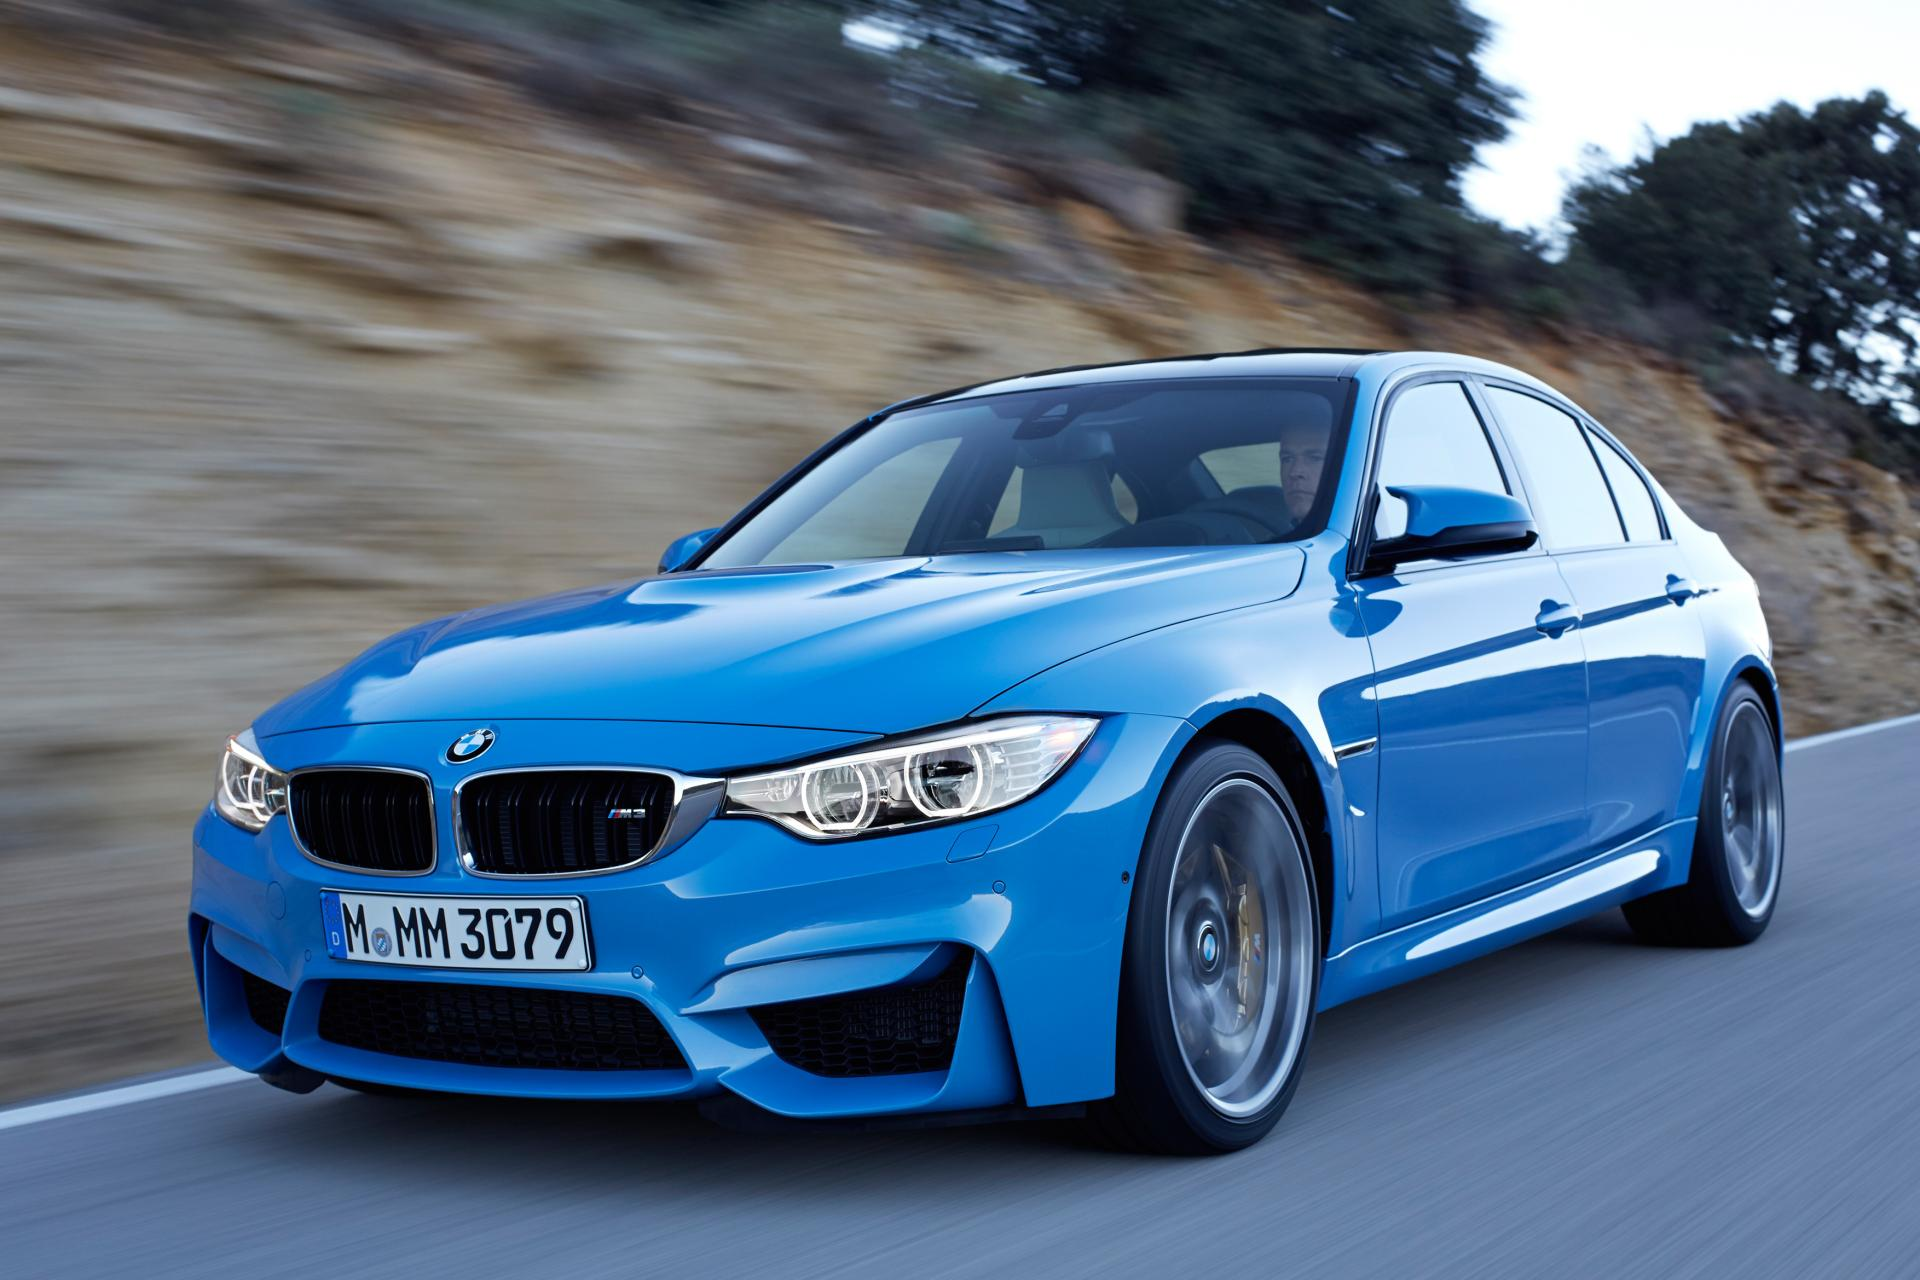 2015 Bmw M3 Sedan News And Information Conceptcarz Com